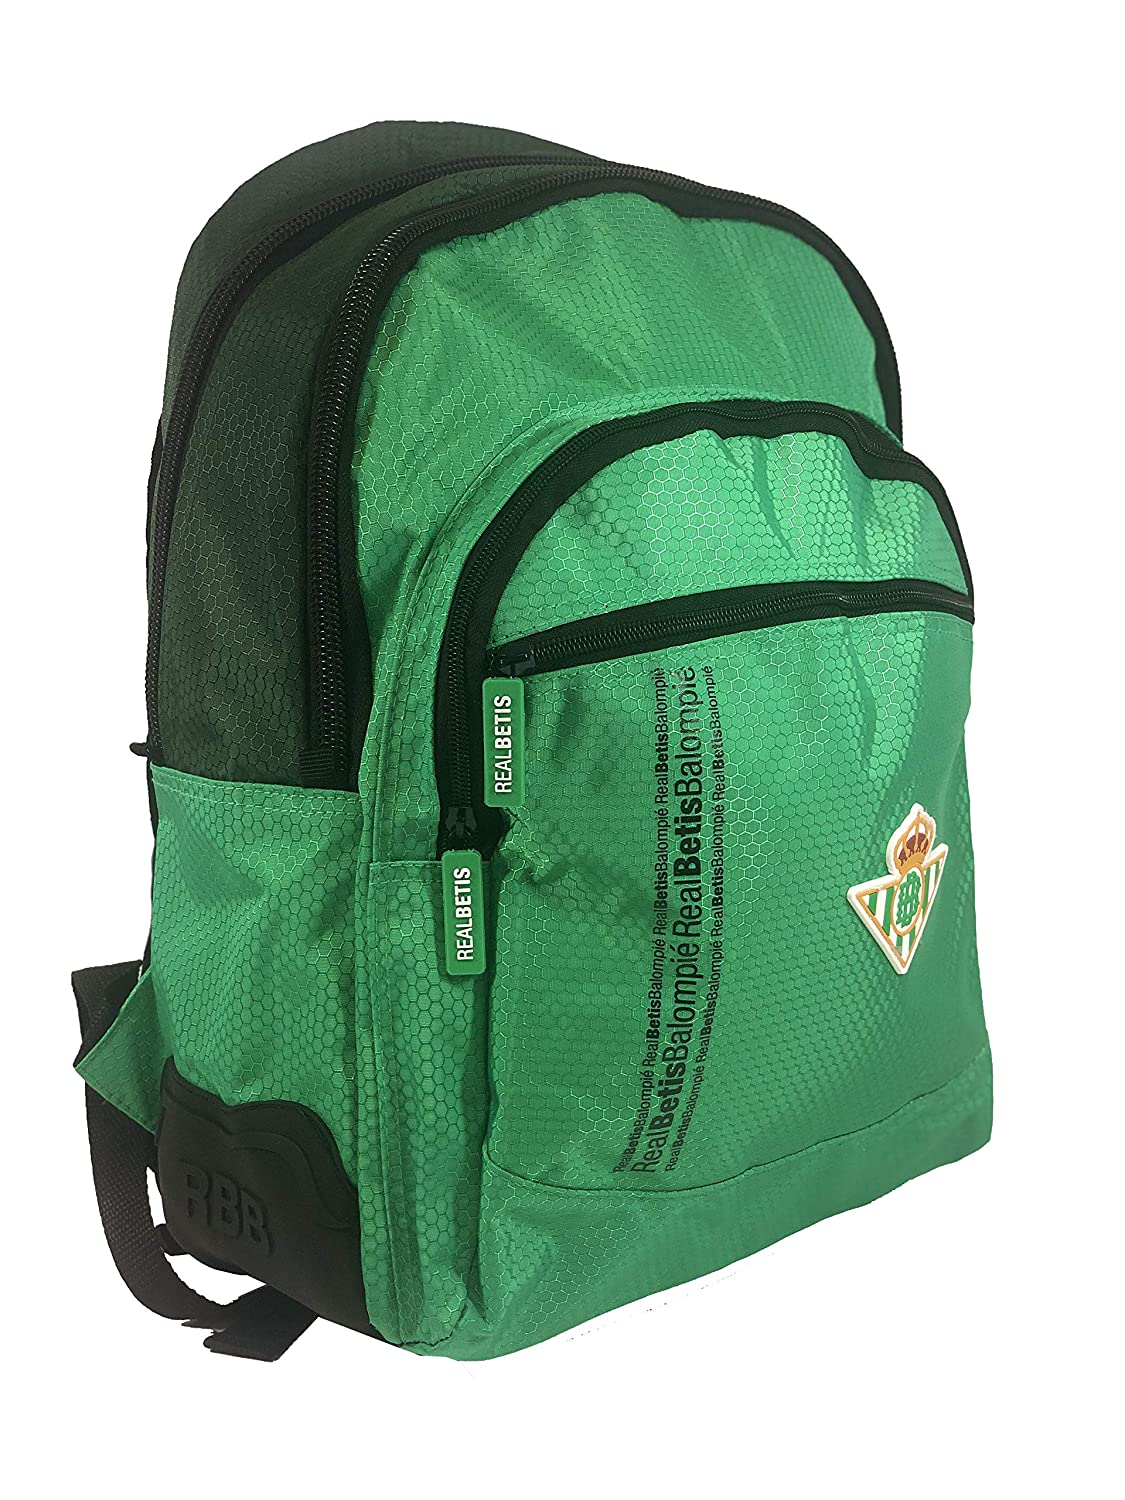 Real Betis Mochila Multibolsillo: Amazon.es: Equipaje